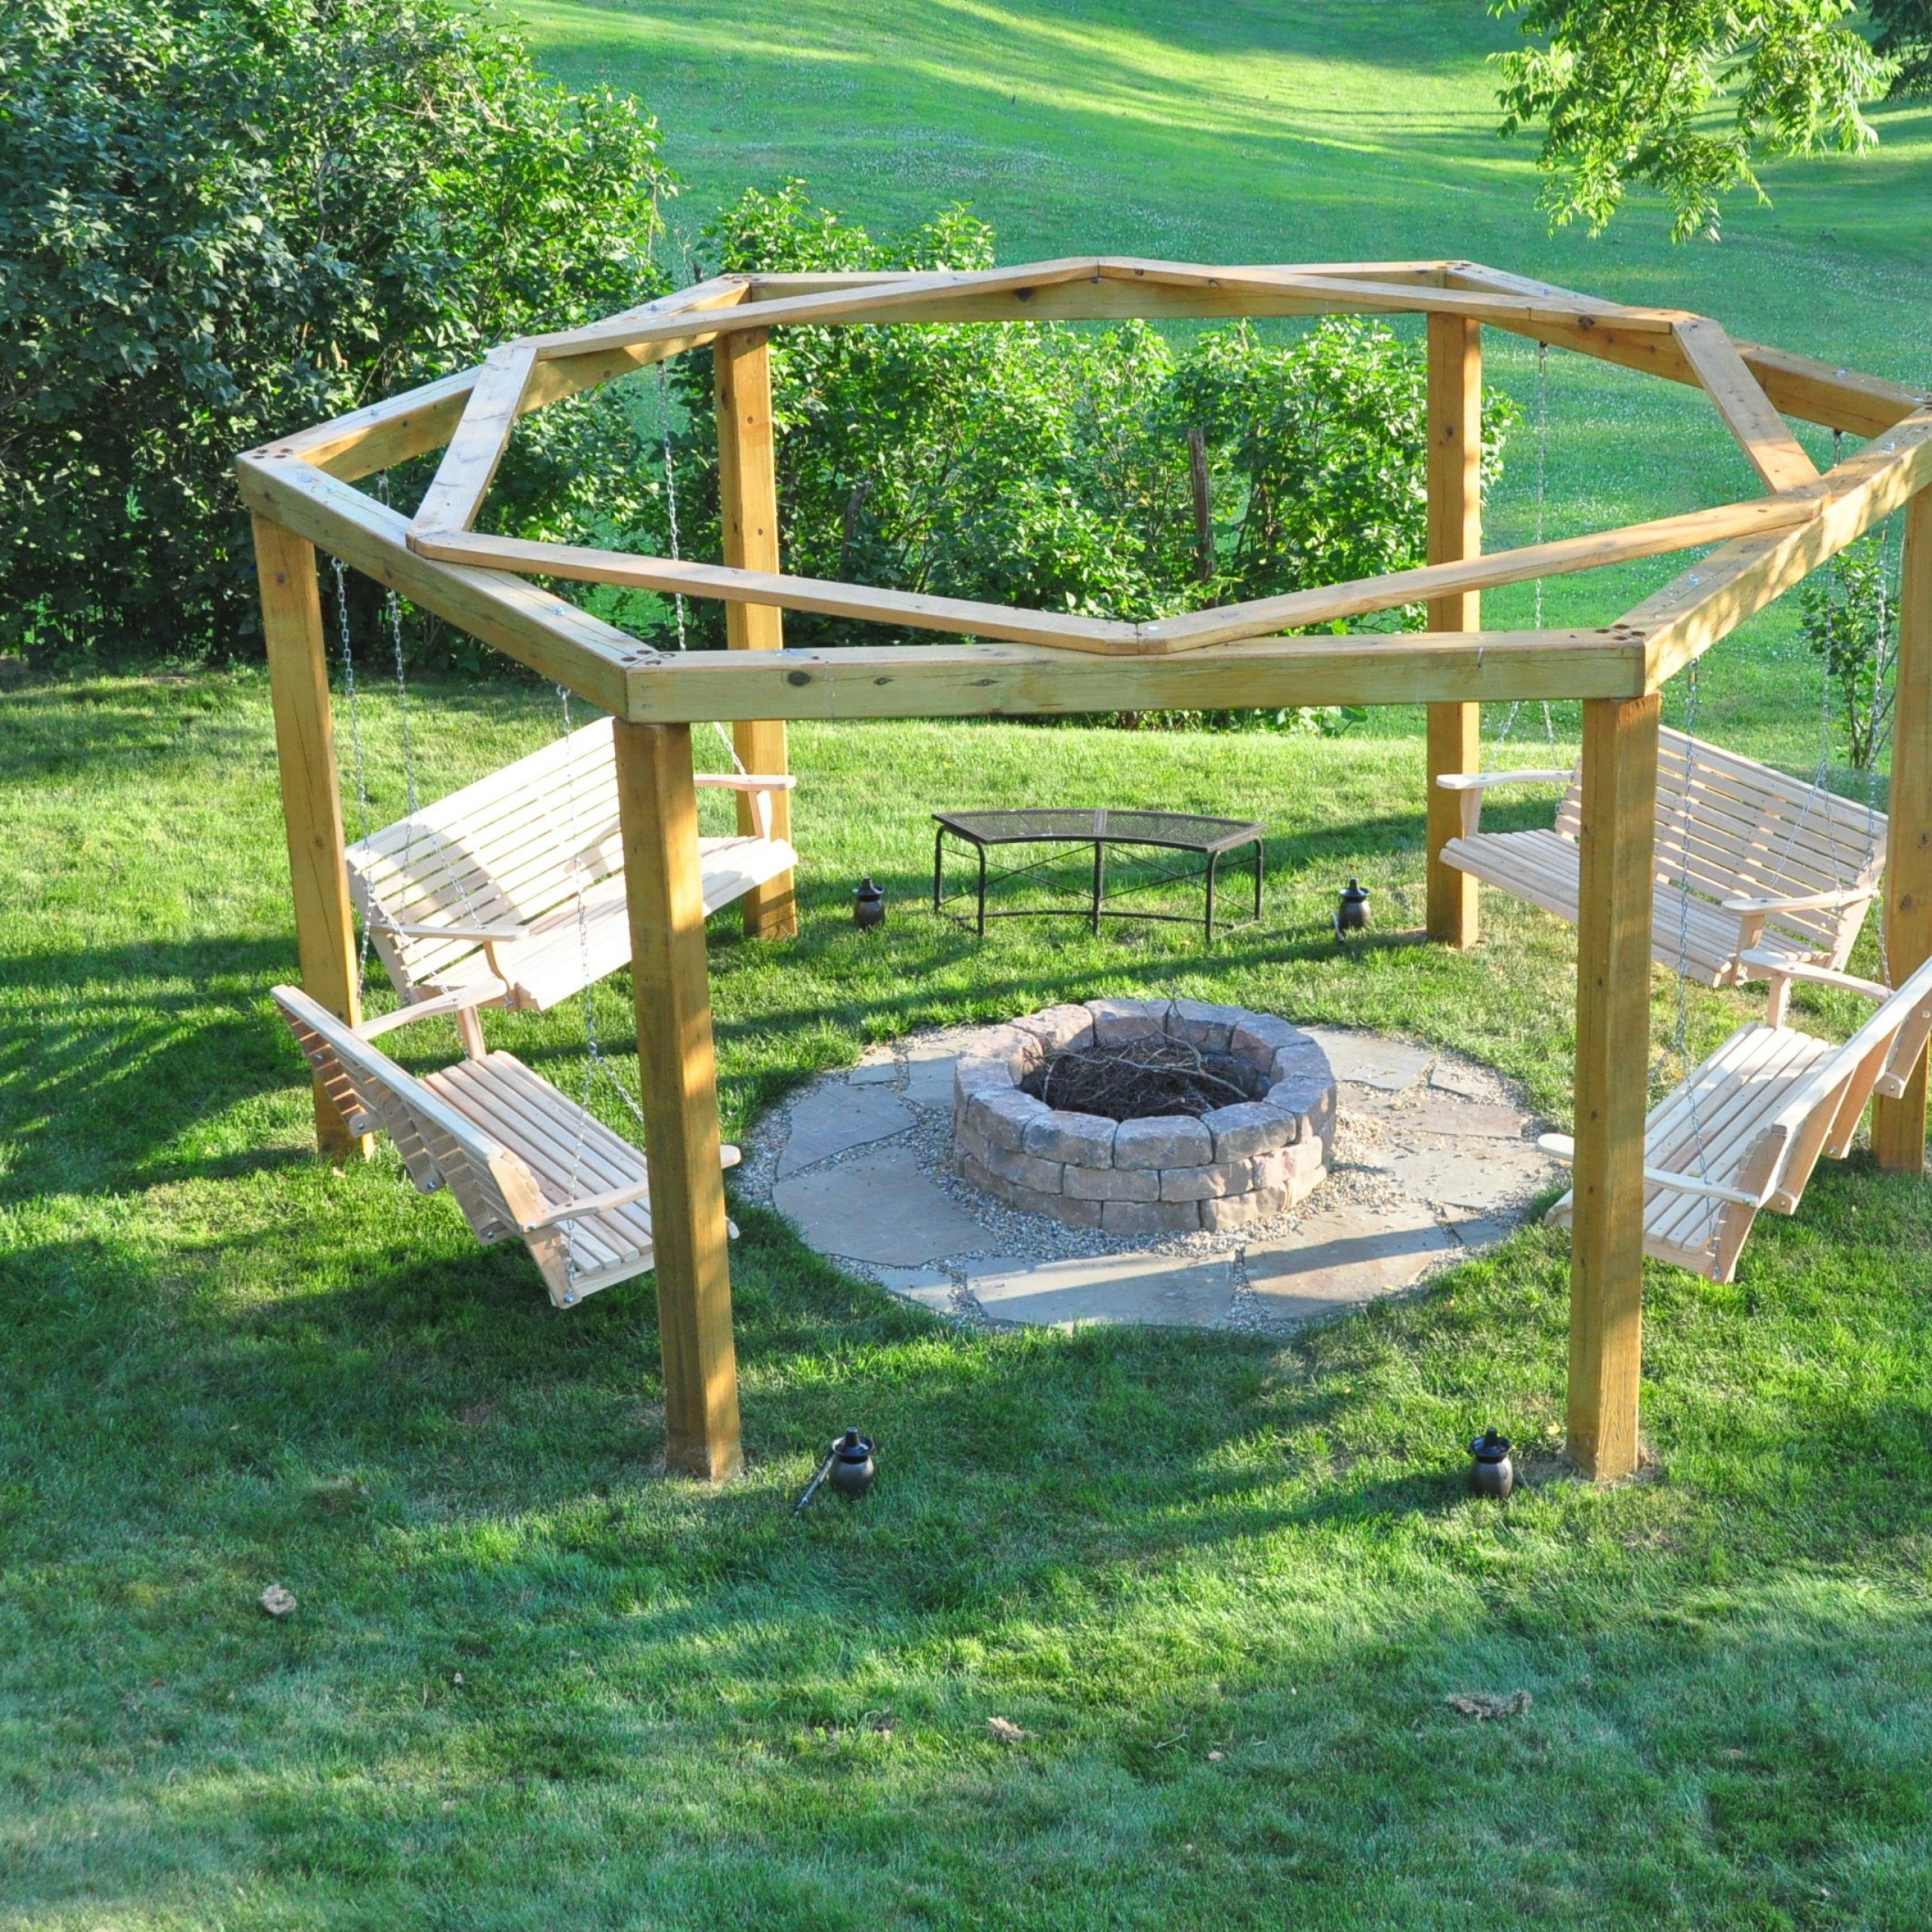 Porch Swing Fire Pit : 12 Steps (With Pictures) – Instructables Throughout Patio Gazebo Porch Swings (View 20 of 25)